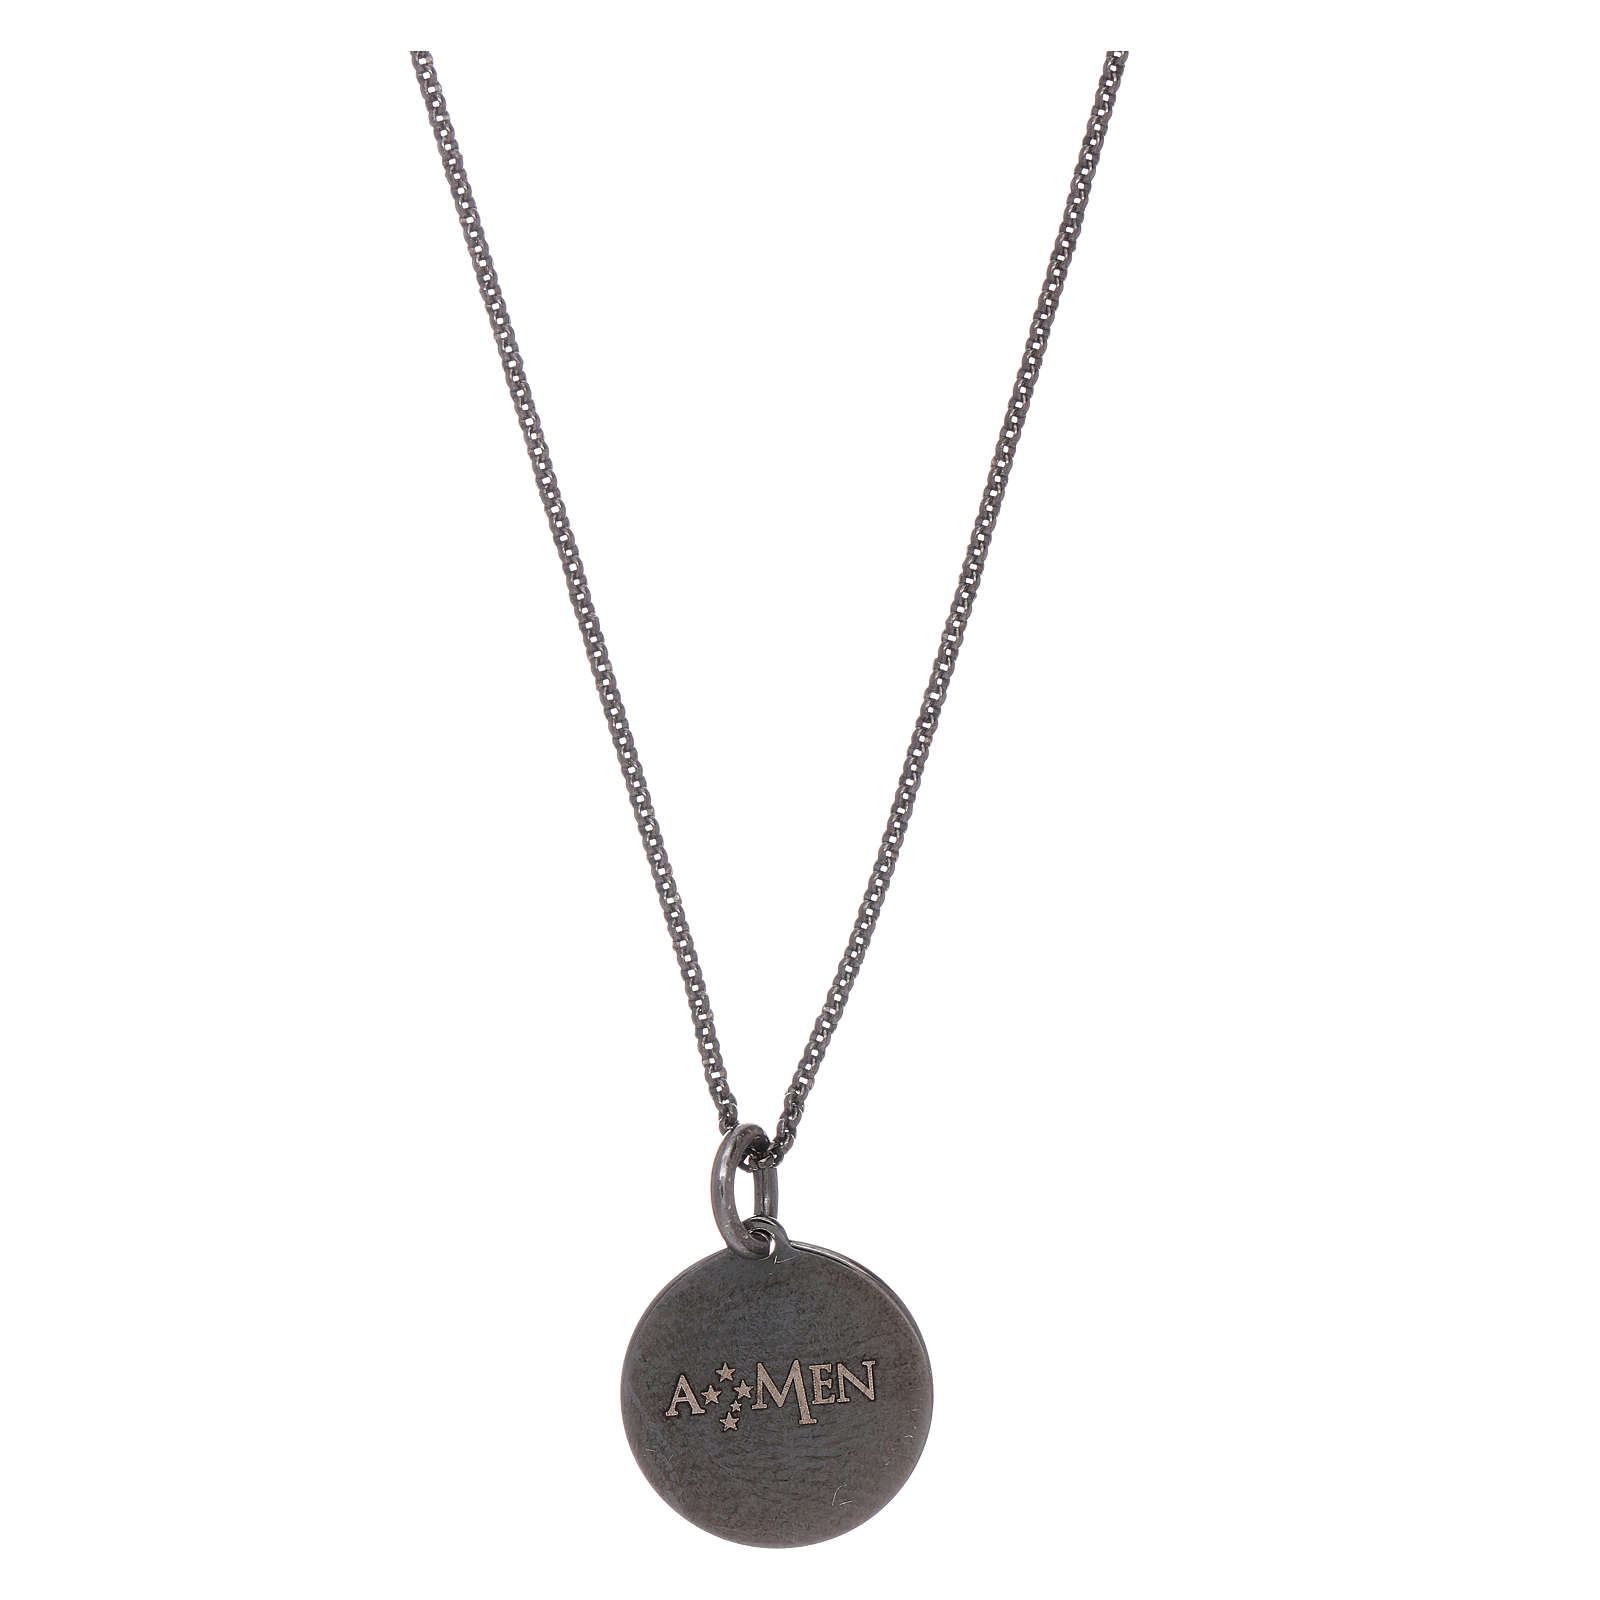 AMEN necklace for men with Our Father prayer in 925 sterling silver 4